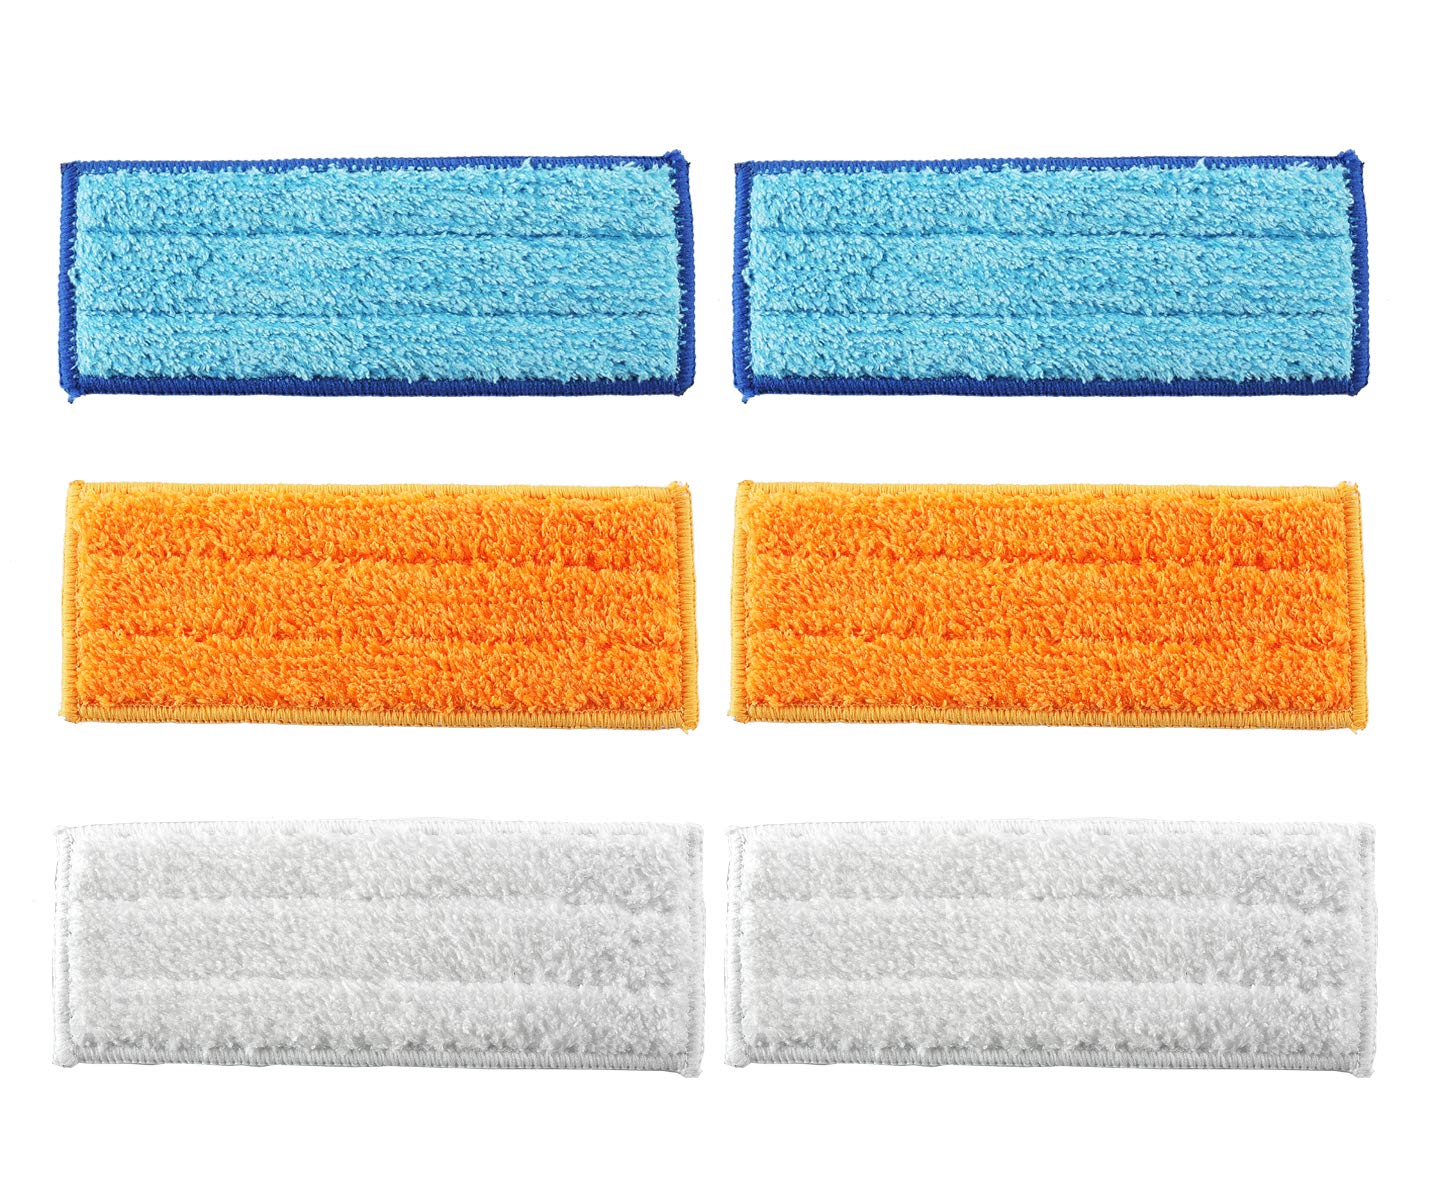 EZCARRIER Washable Mopping Pads Compatible for iRobot Braava Jet 240 241 (2 Wet Mopping Pads+2 Damp Sweeping Pads+2 Dry Sweeping Pads)